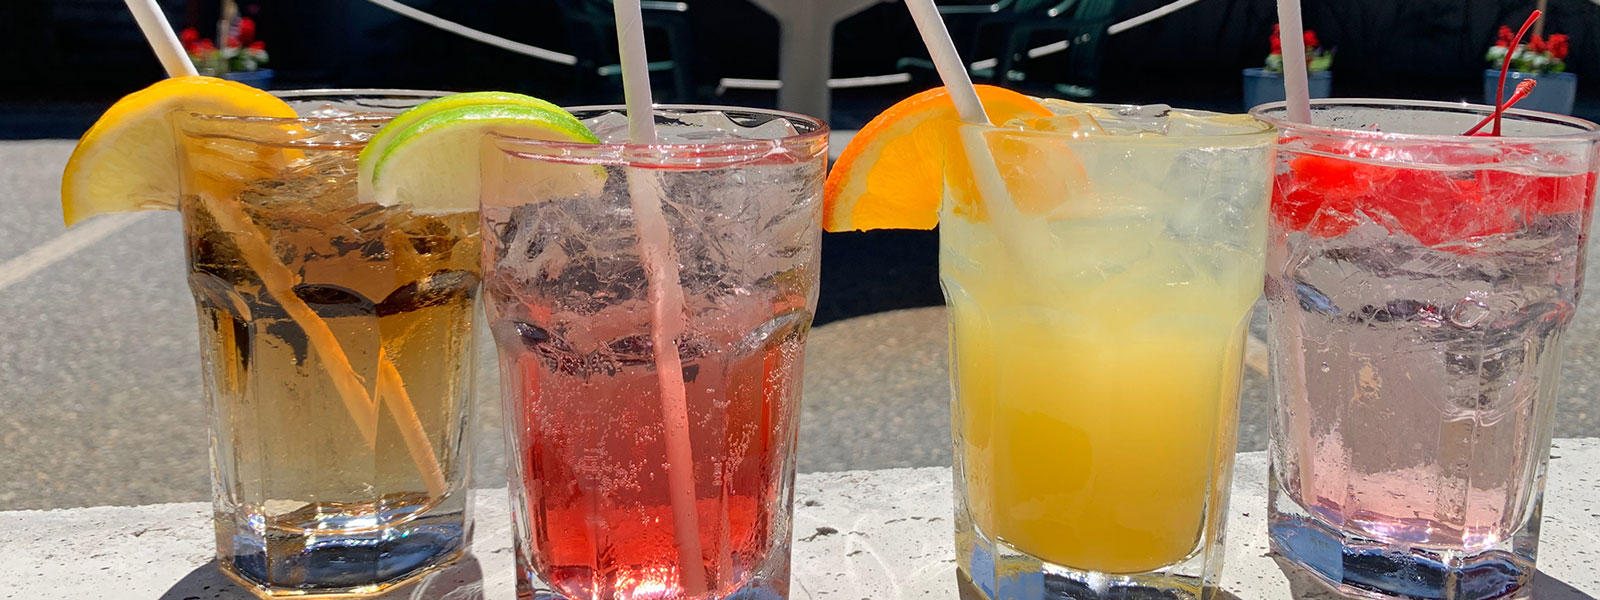 Sunday fun day cocktails outside